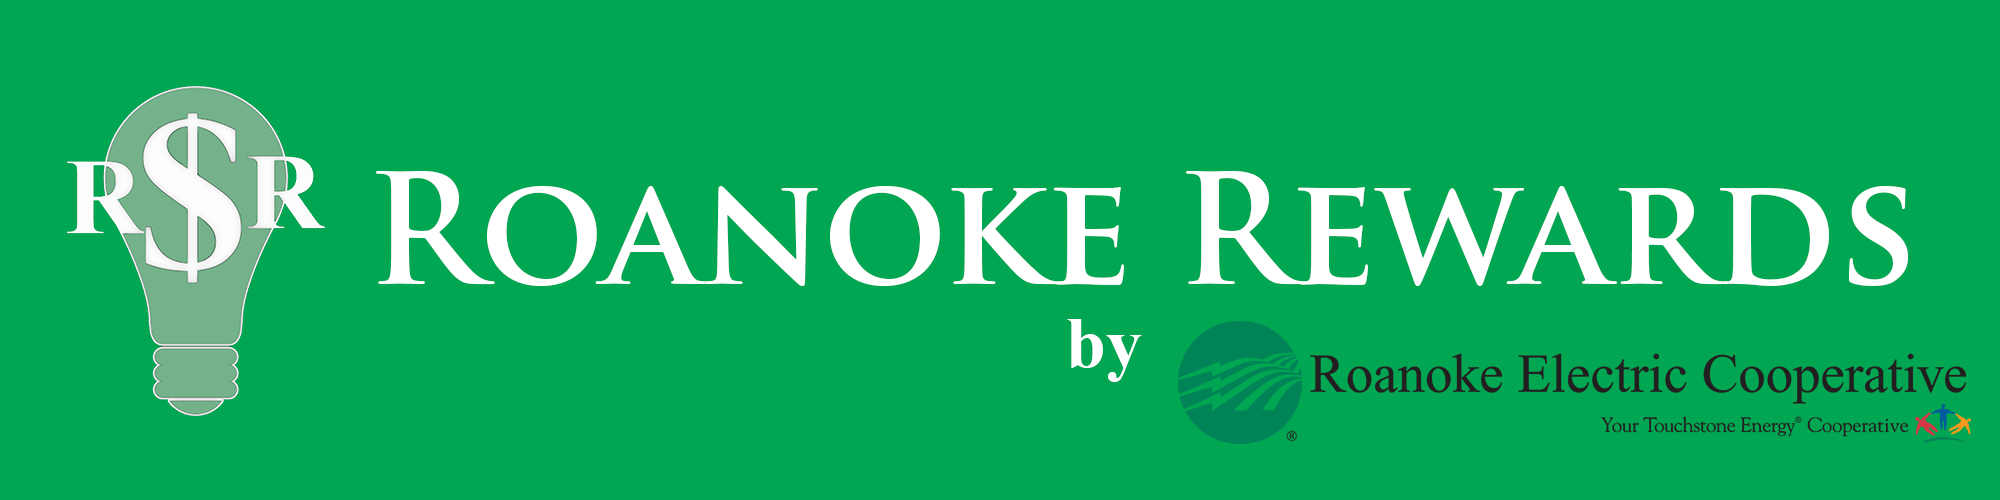 Roanoke rewards logo 2